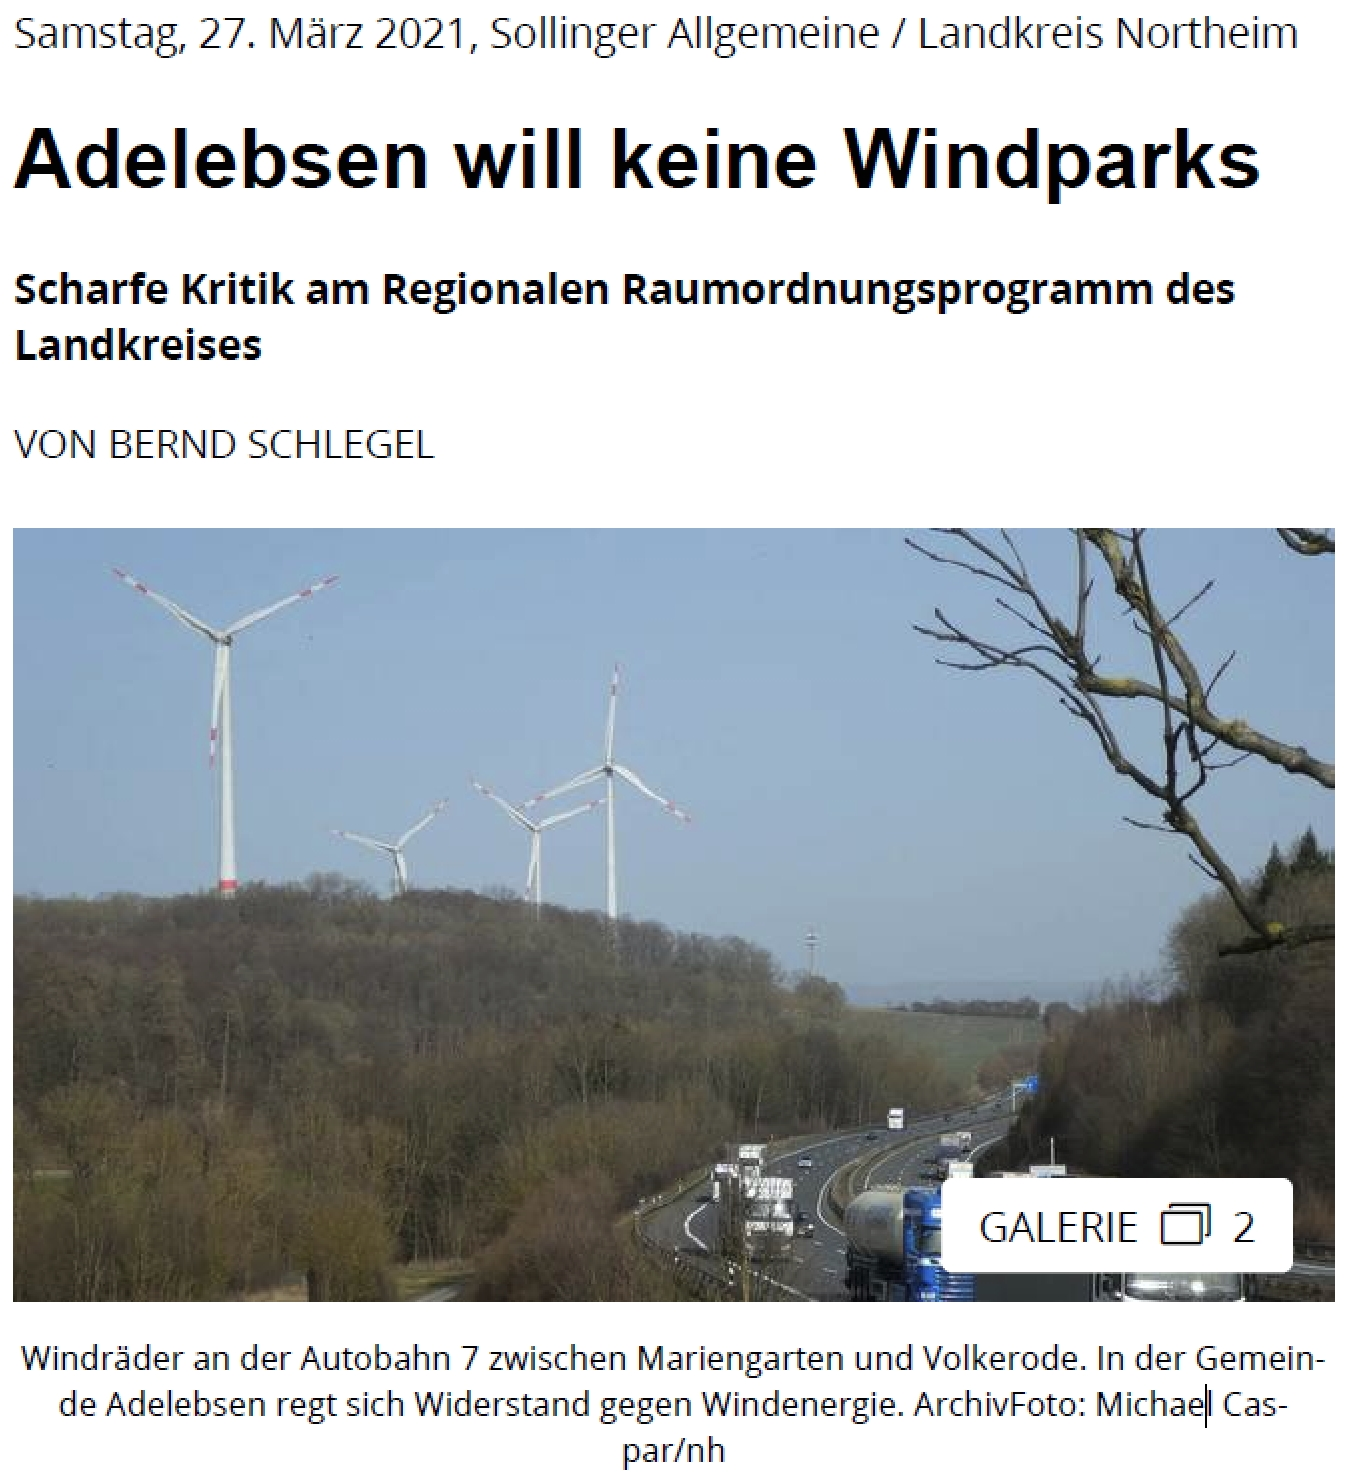 20210327 adelebsen windpark